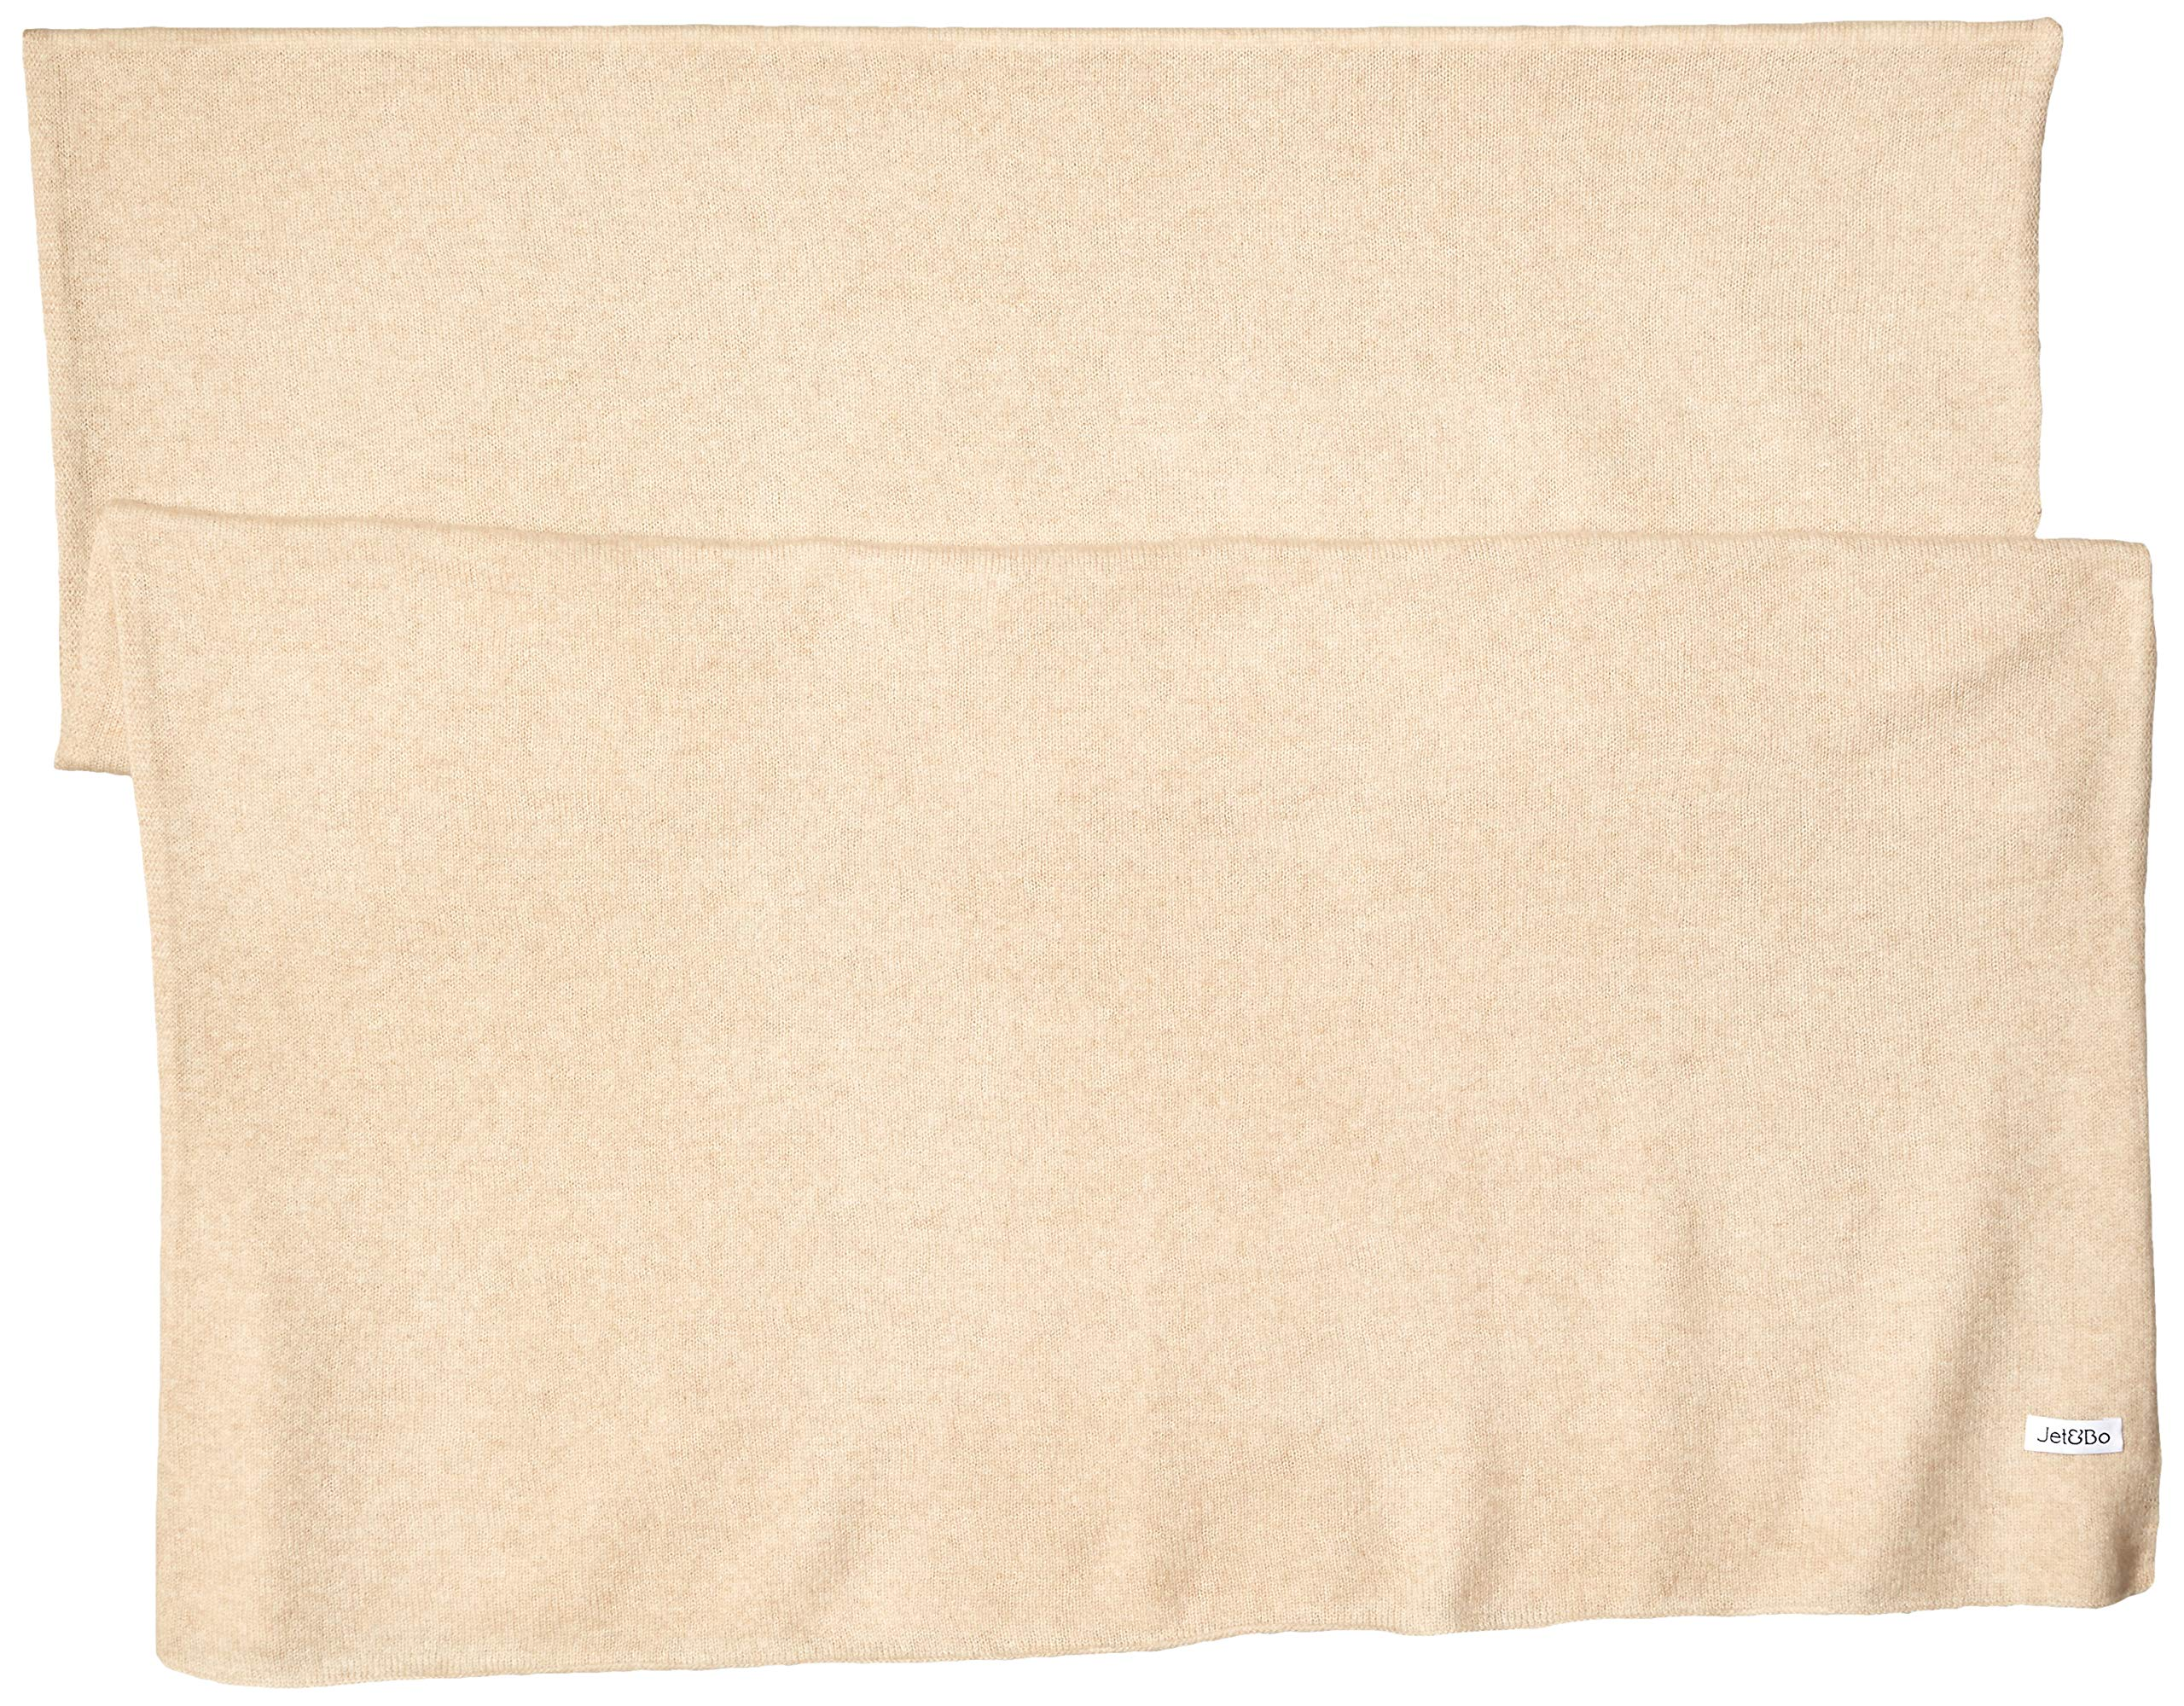 Jet&Bo 100% Pure Cashmere Lightweight Travel Wrap & Scarf Beige 7GG by Jet&Bo (Image #2)